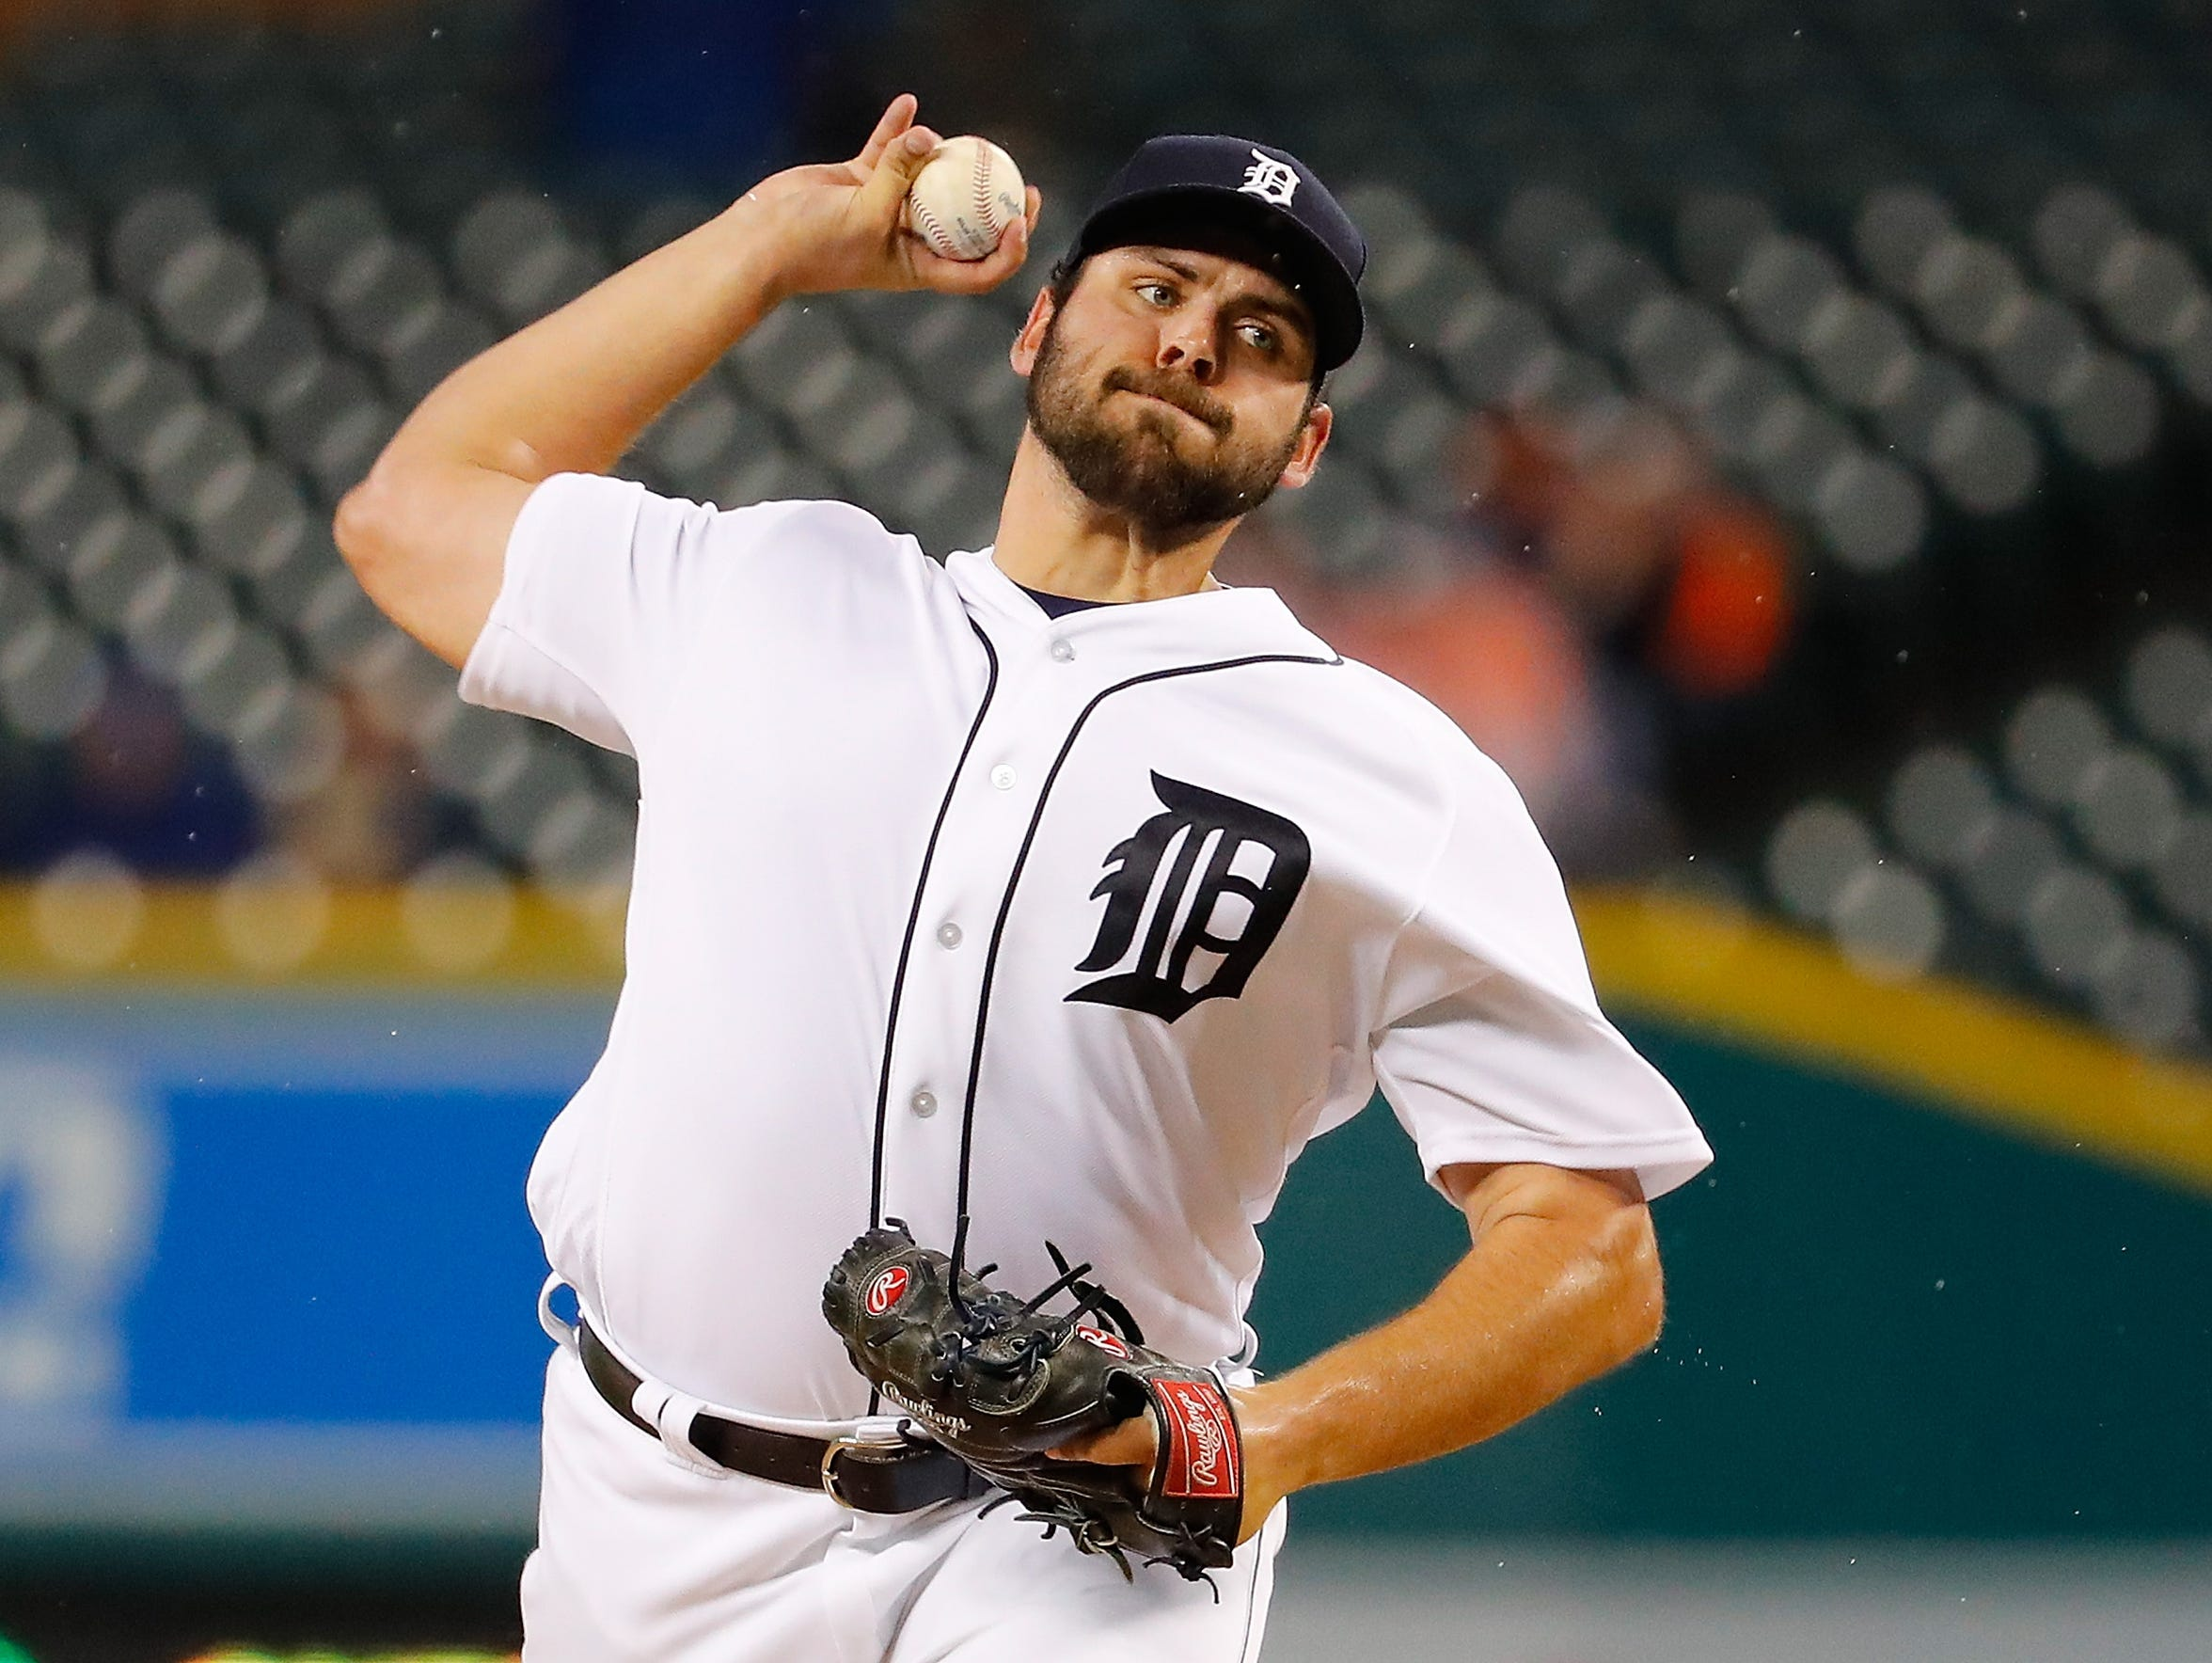 Detroit Tigers pitcher Michael Fulmer throws during